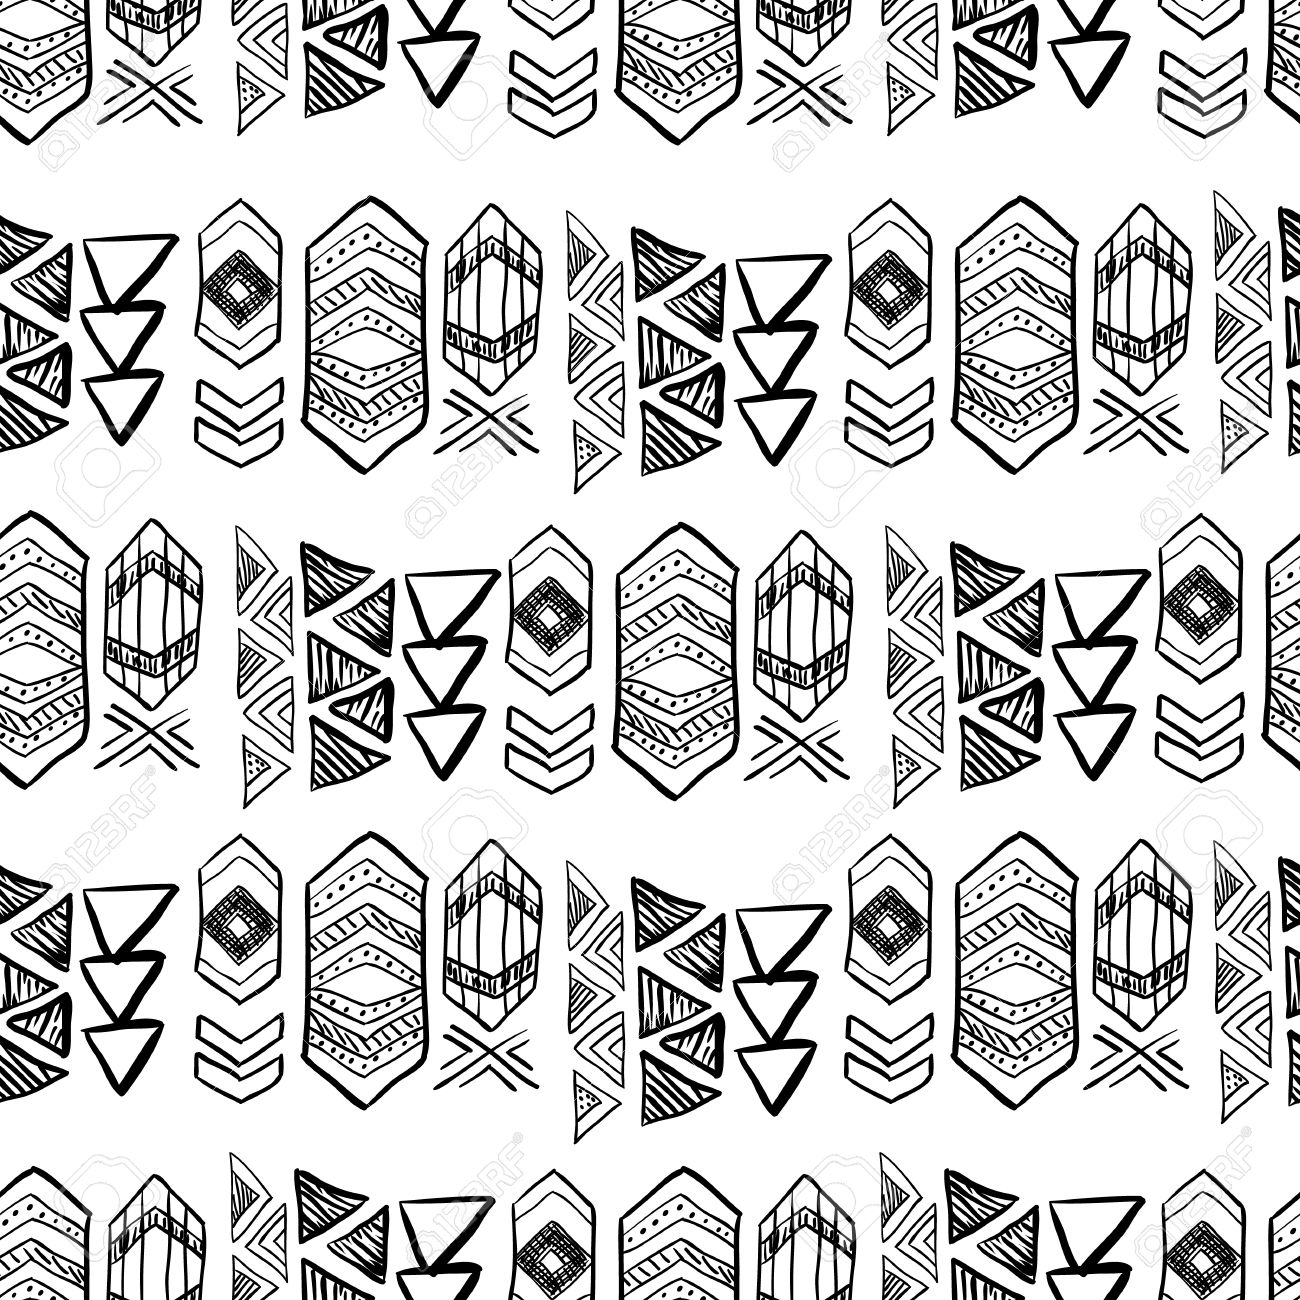 Native american seamless pattern with abstract aztec symbols native american seamless pattern with abstract aztec symbols colored hand drawn doodle vector background for buycottarizona